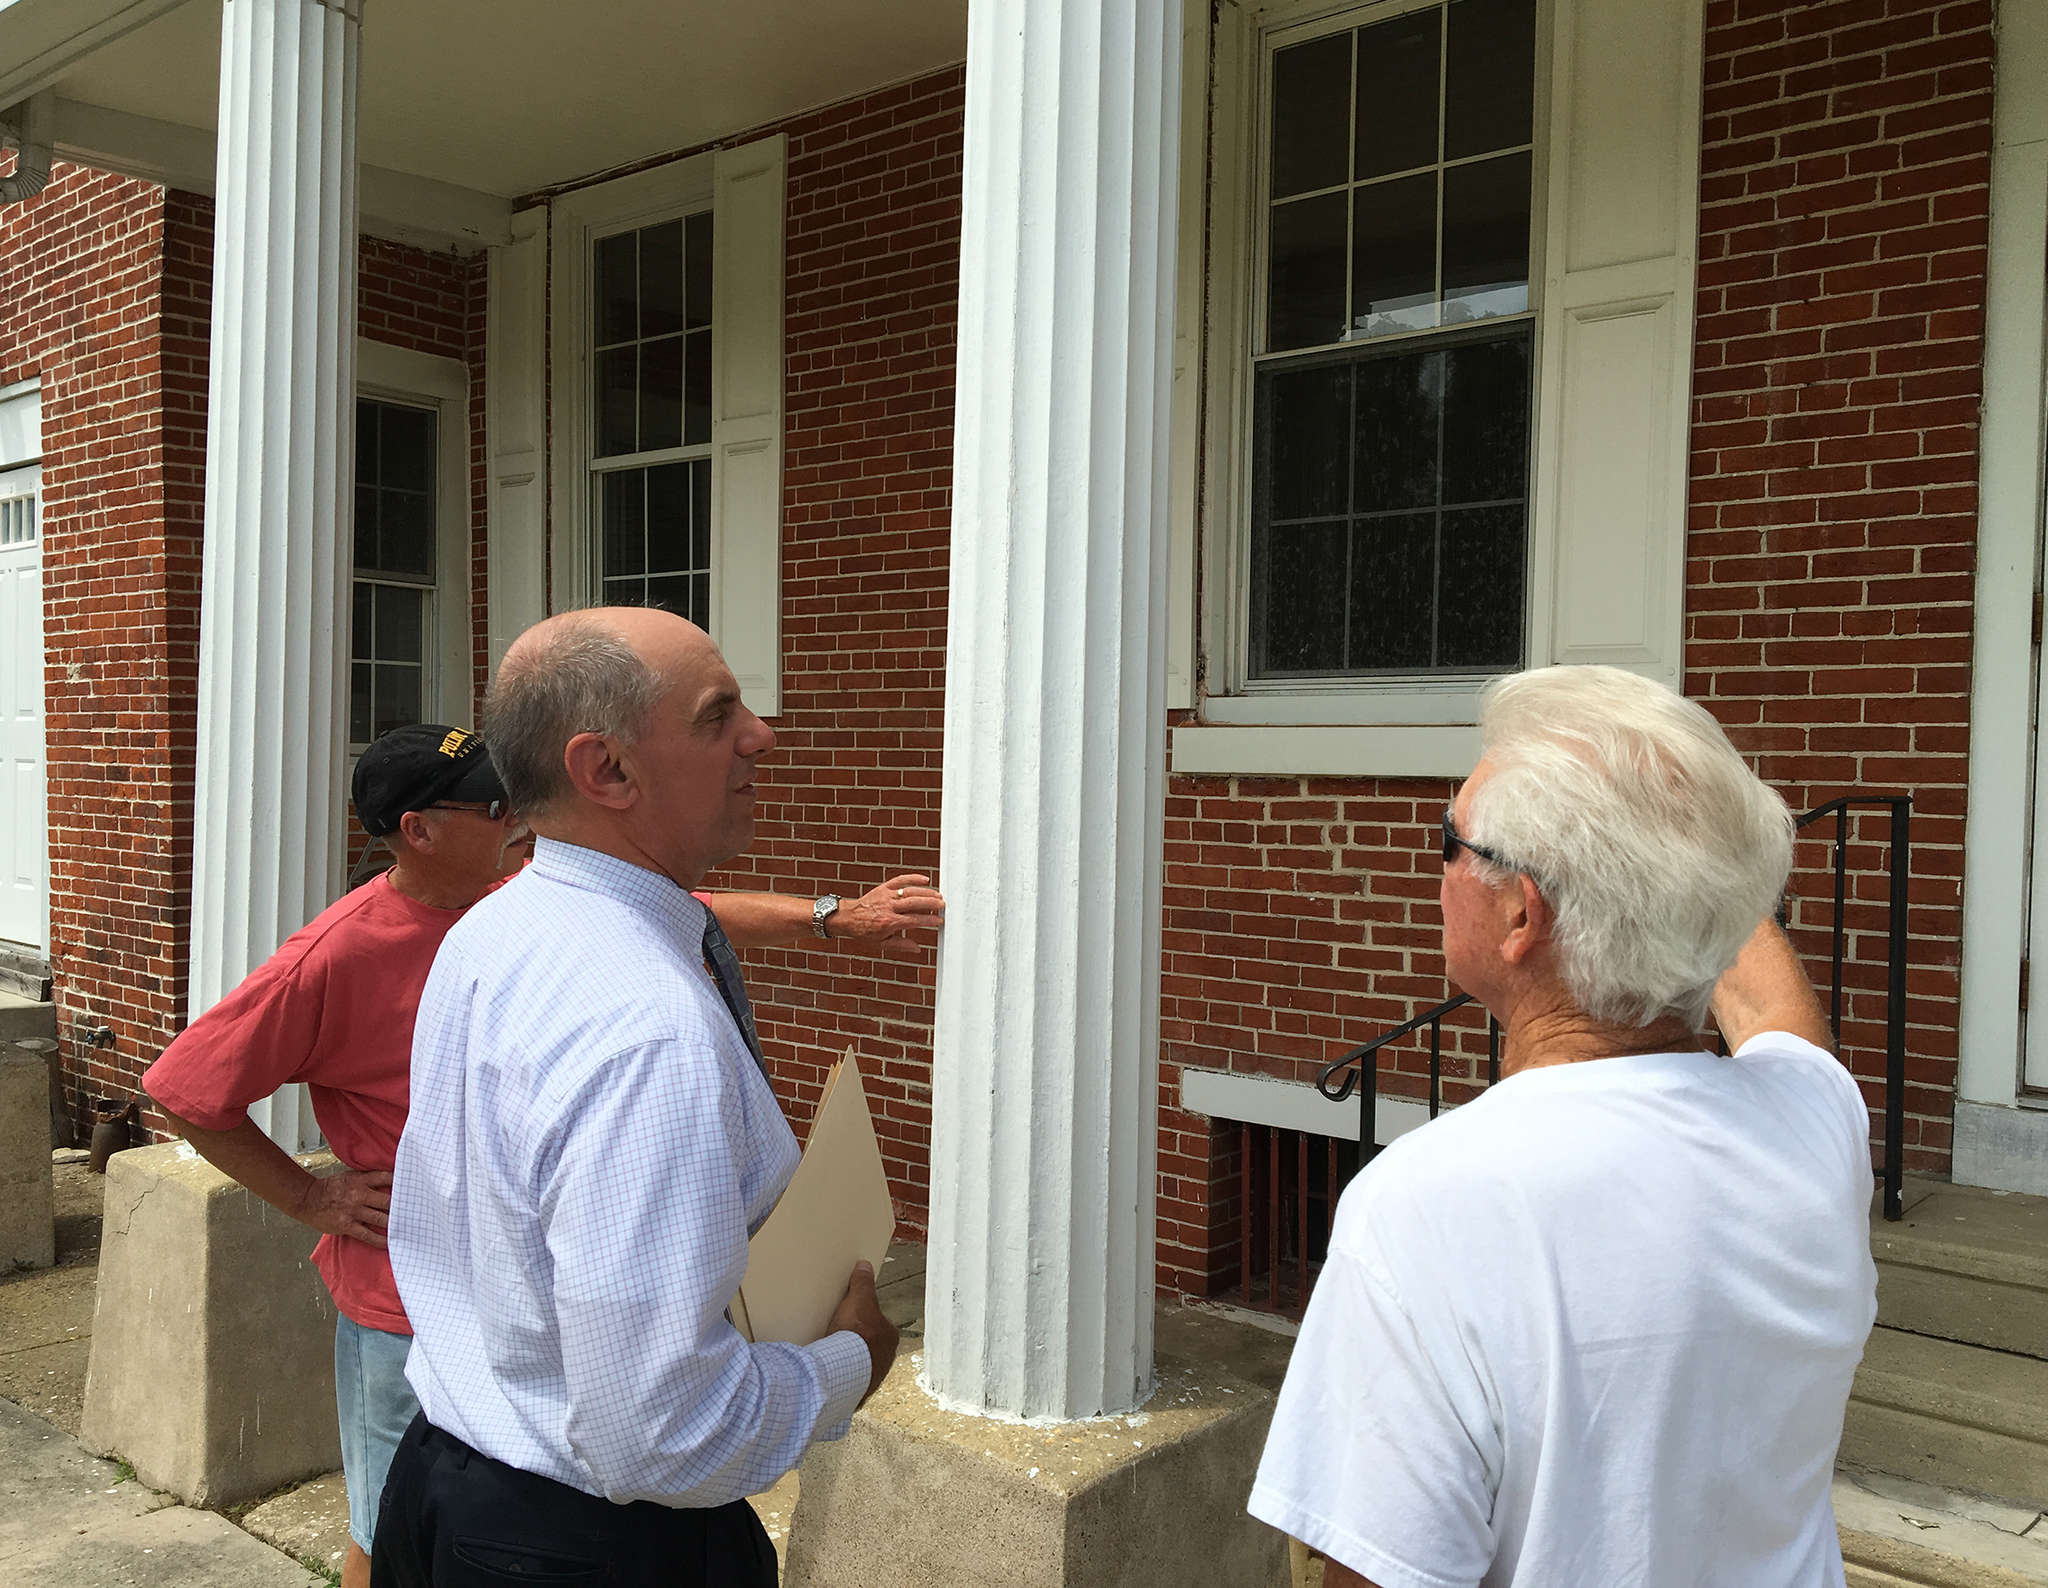 Former Stratford Mayor John Gentless (center), preservationist Ed Claypoole (left), and longtime borough resident Harry Barry are all concerned about what lies in store for the Tomlinson Mansion, built in 1844.